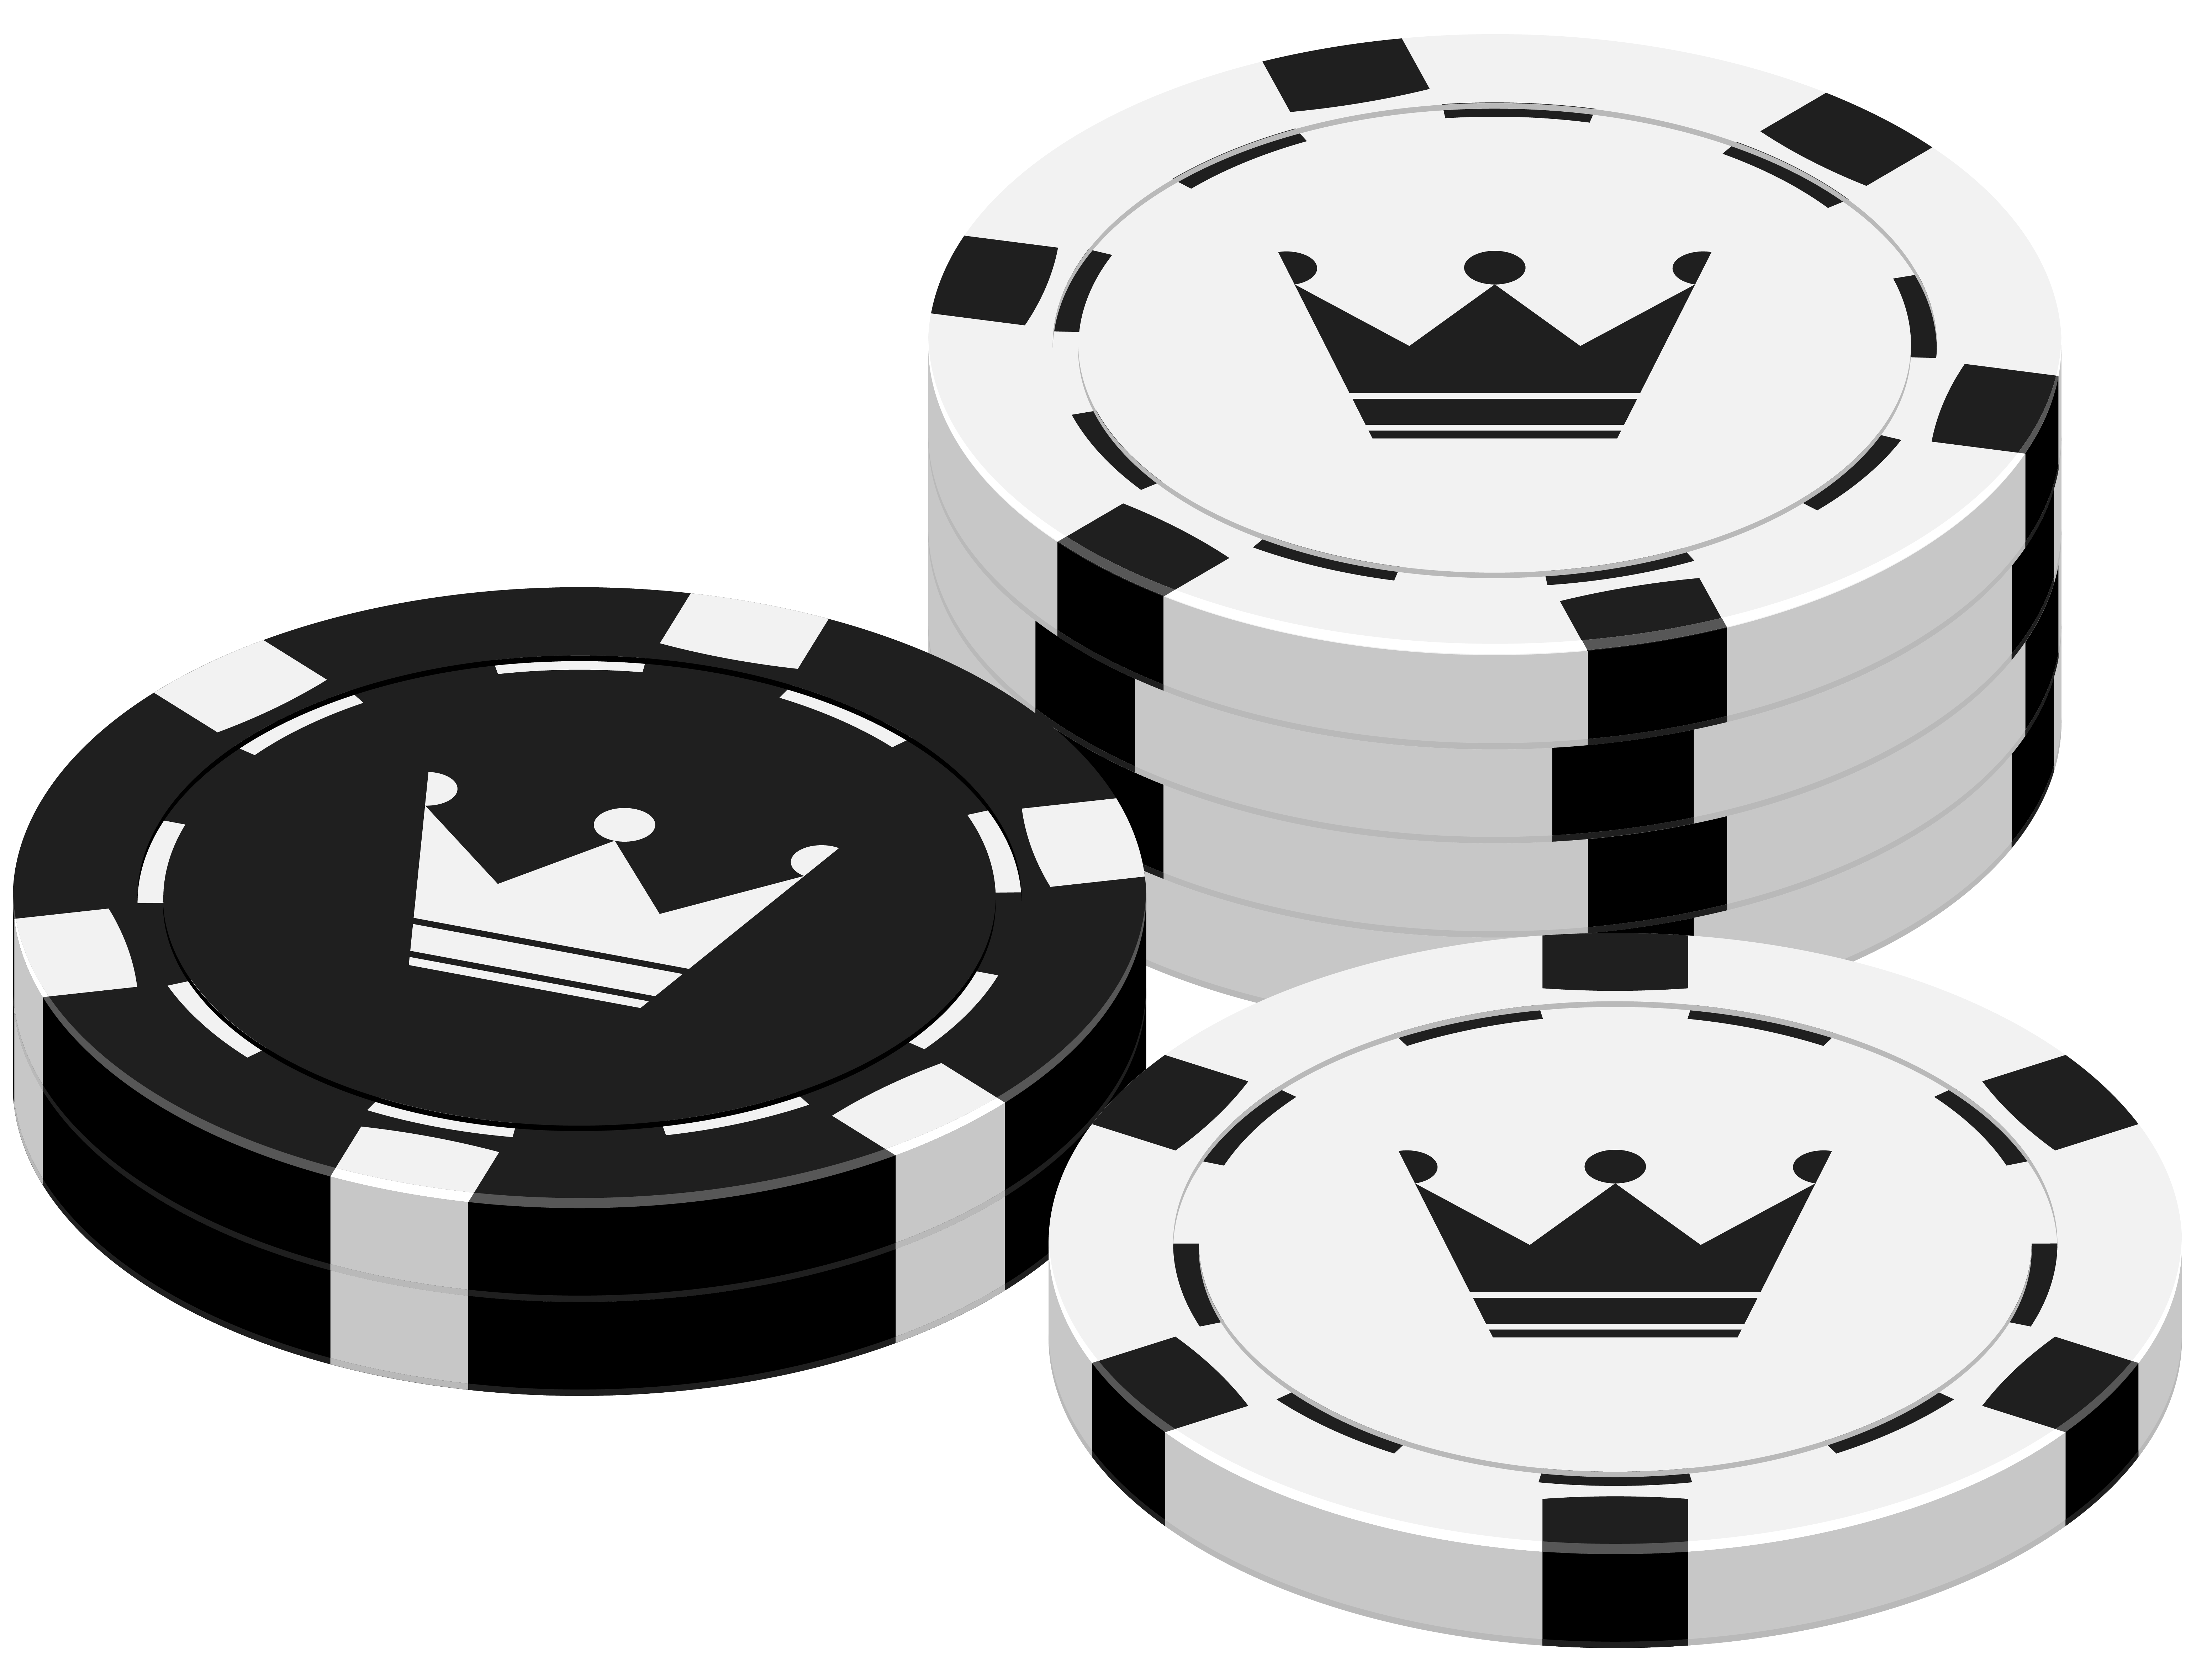 clipart royalty free stock Casino png best web. Chips clipart poker.